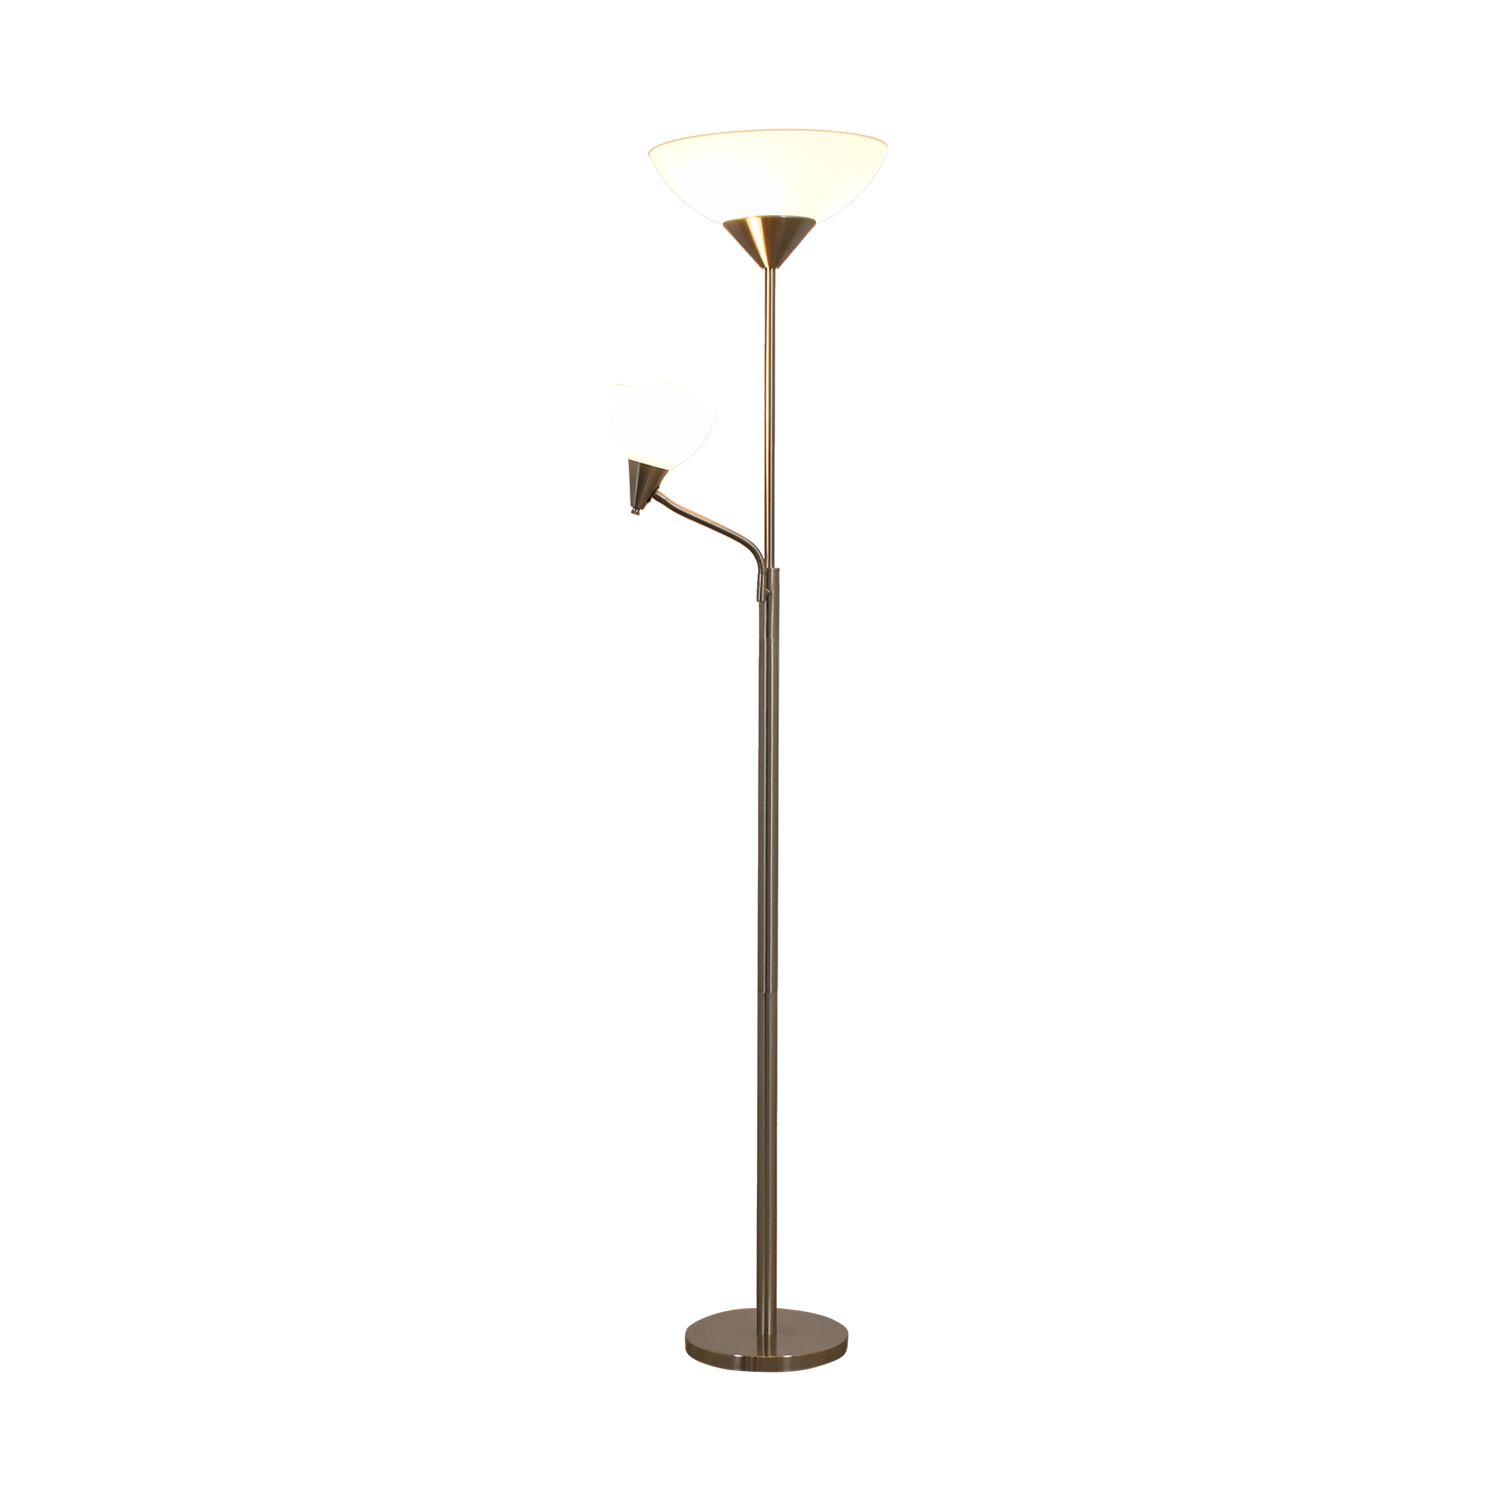 66 off bed bath and beyond bed bath and beyond silver for Shelf floor lamp bed bath and beyond